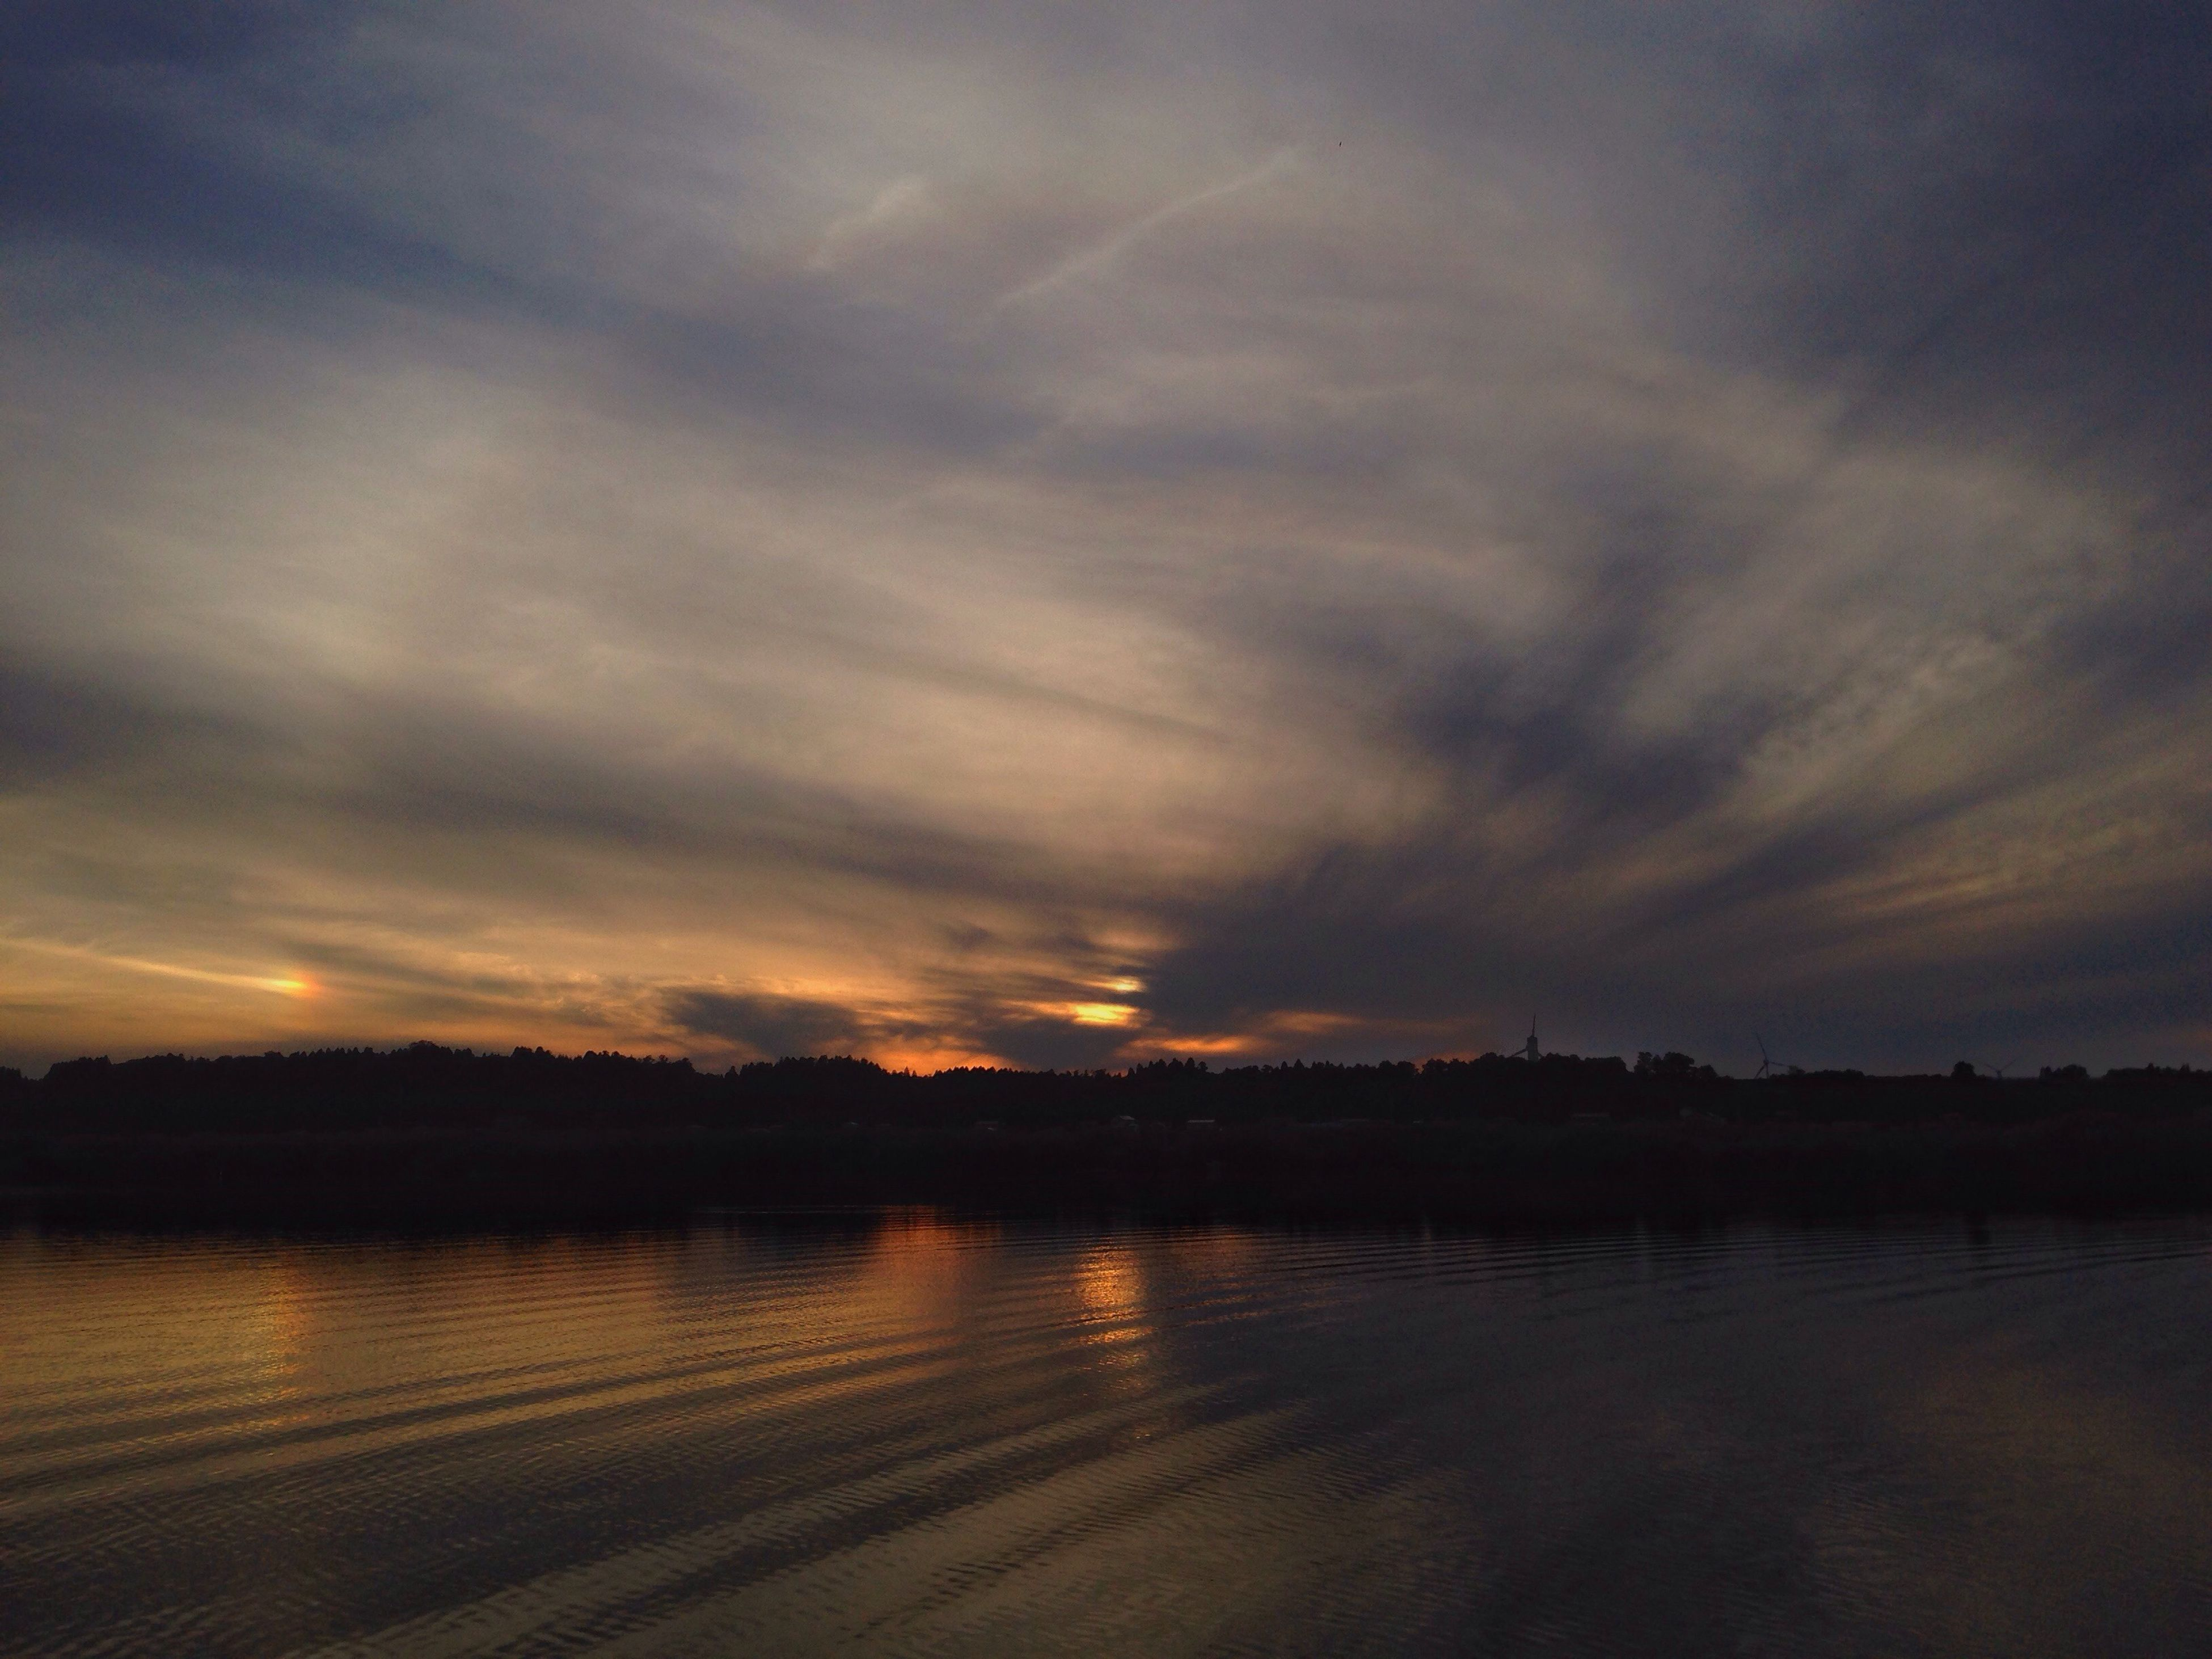 water, sunset, tranquil scene, silhouette, scenics, tranquility, lake, dusk, calm, sky, cloud, reflection, beauty in nature, cloud - sky, nature, dramatic sky, moody sky, majestic, vacations, atmosphere, cloudscape, outdoors, cloudy, tourism, atmospheric mood, no people, non-urban scene, remote, sea, storm cloud